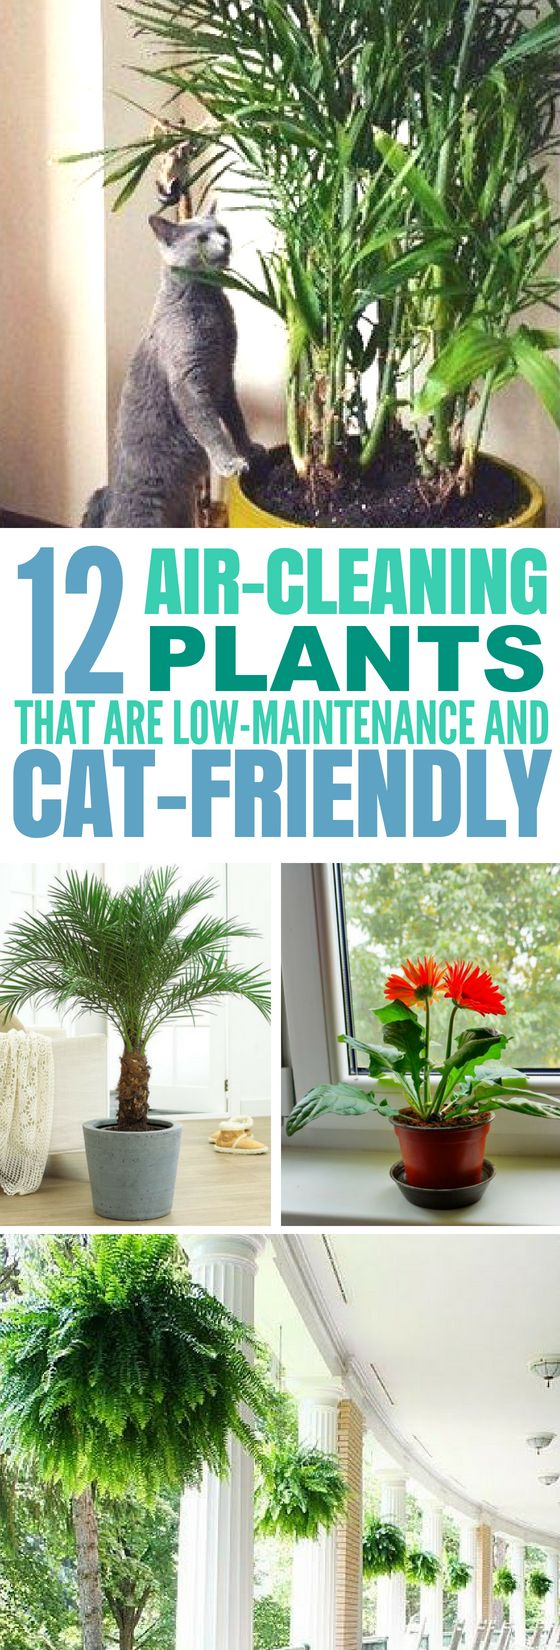 1b75296c9e89b0ccdd118c073bf0ac80 These 12 Air Purifying Plants Are Safe For Cats And Easy To Care For! #plants #g...